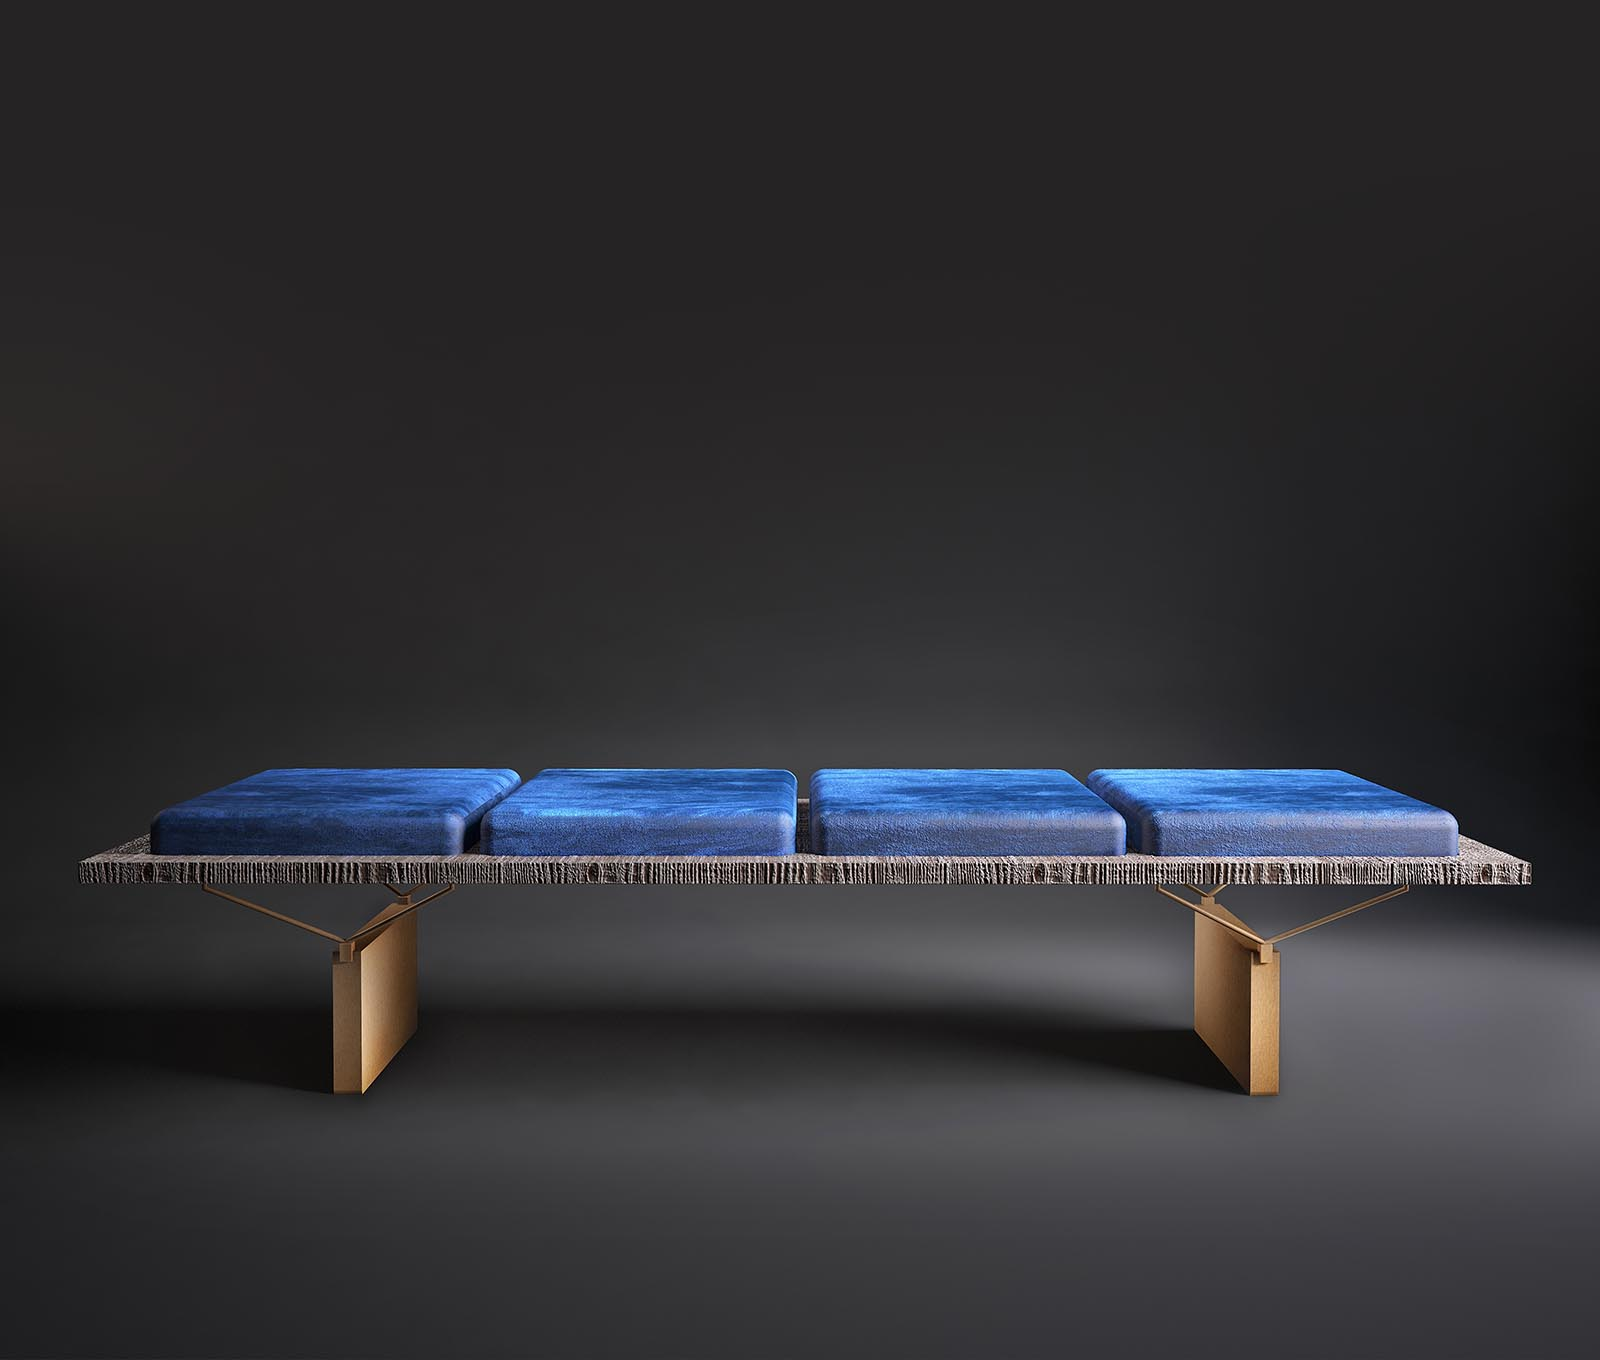 Stamford - Bench made in Italy by Rossato